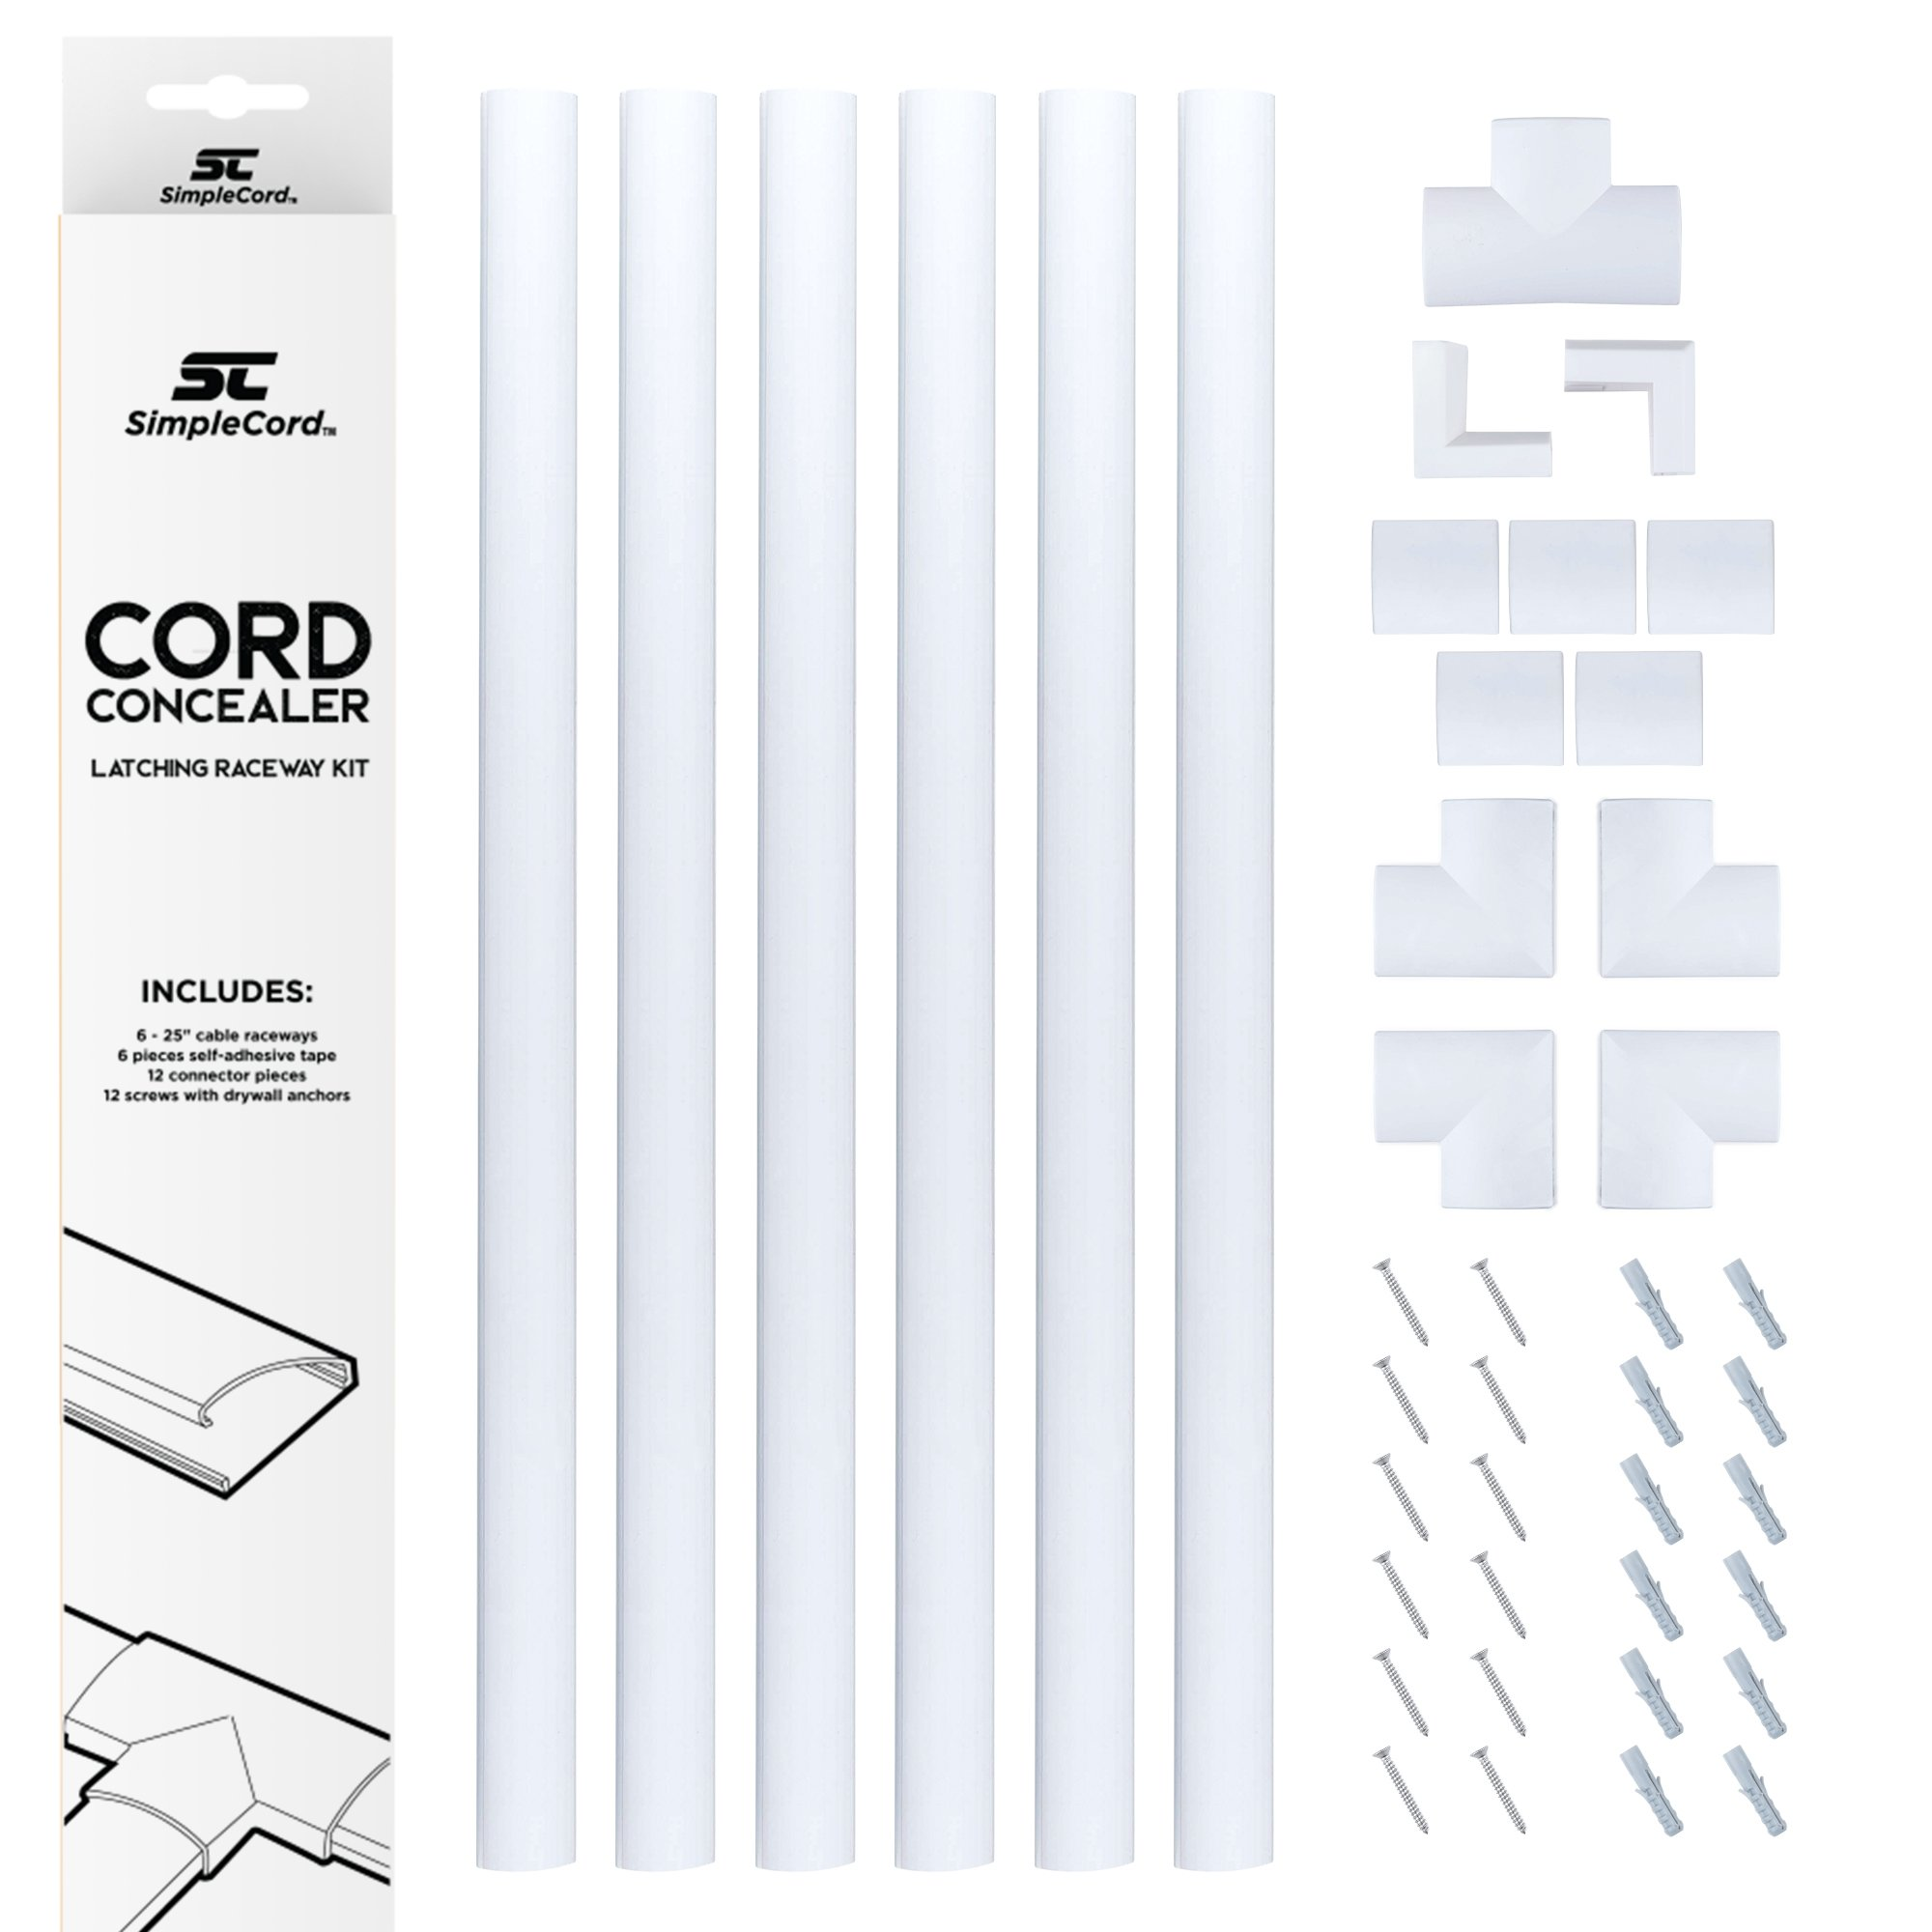 Cord Concealer System Covers Cables, Cords Wires - Cable Cover Management Raceway Kit Hiding Wall Mount TV Power Cords in Home Office - SimpleCord by SimpleCord (Image #1)